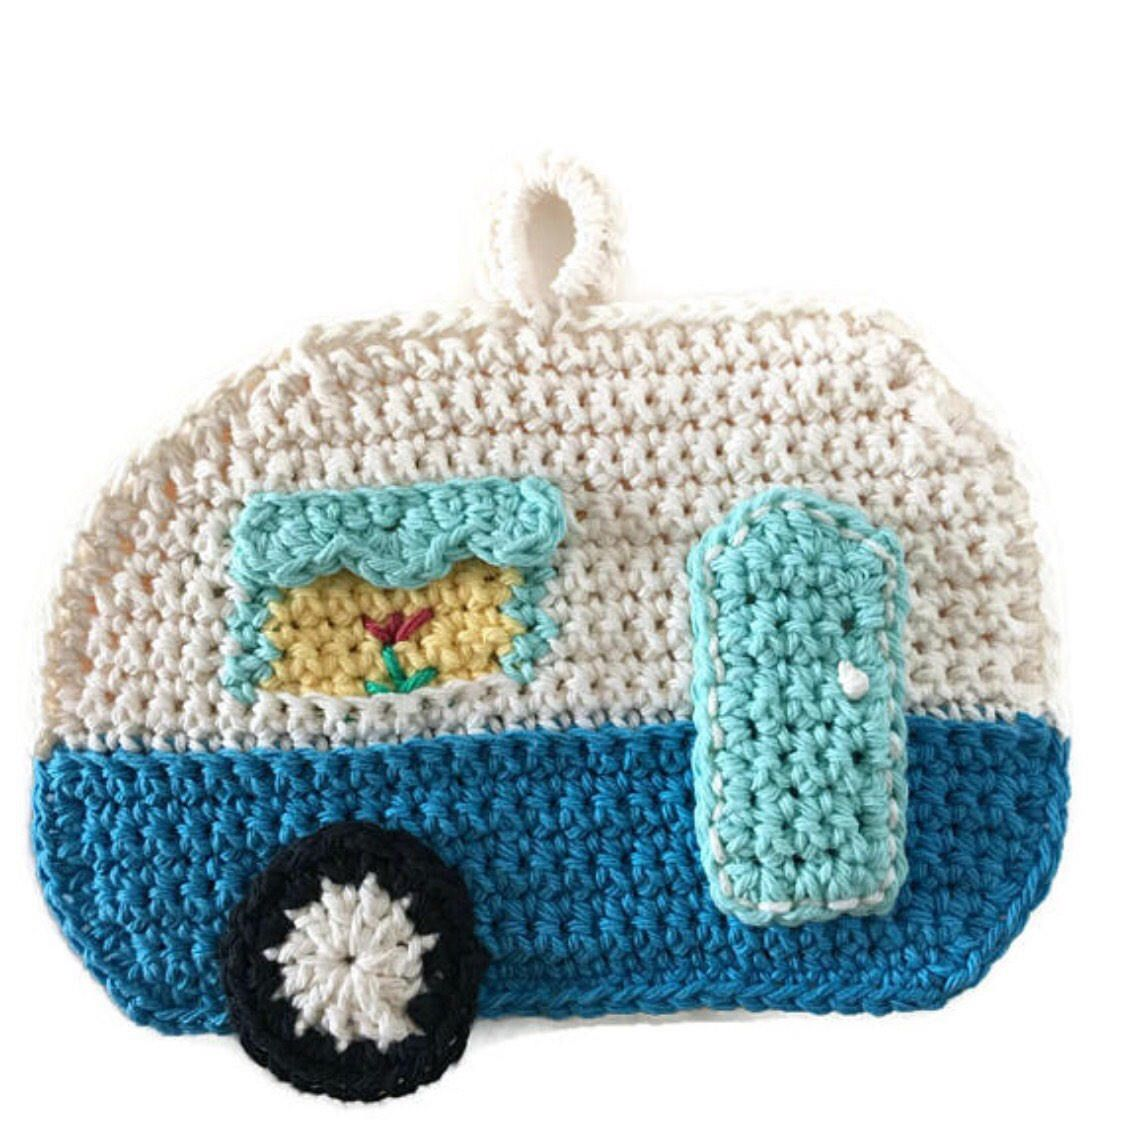 Camper Potholder,RV Pot Holder,Crochet Trivet,Glamping,Travel ...